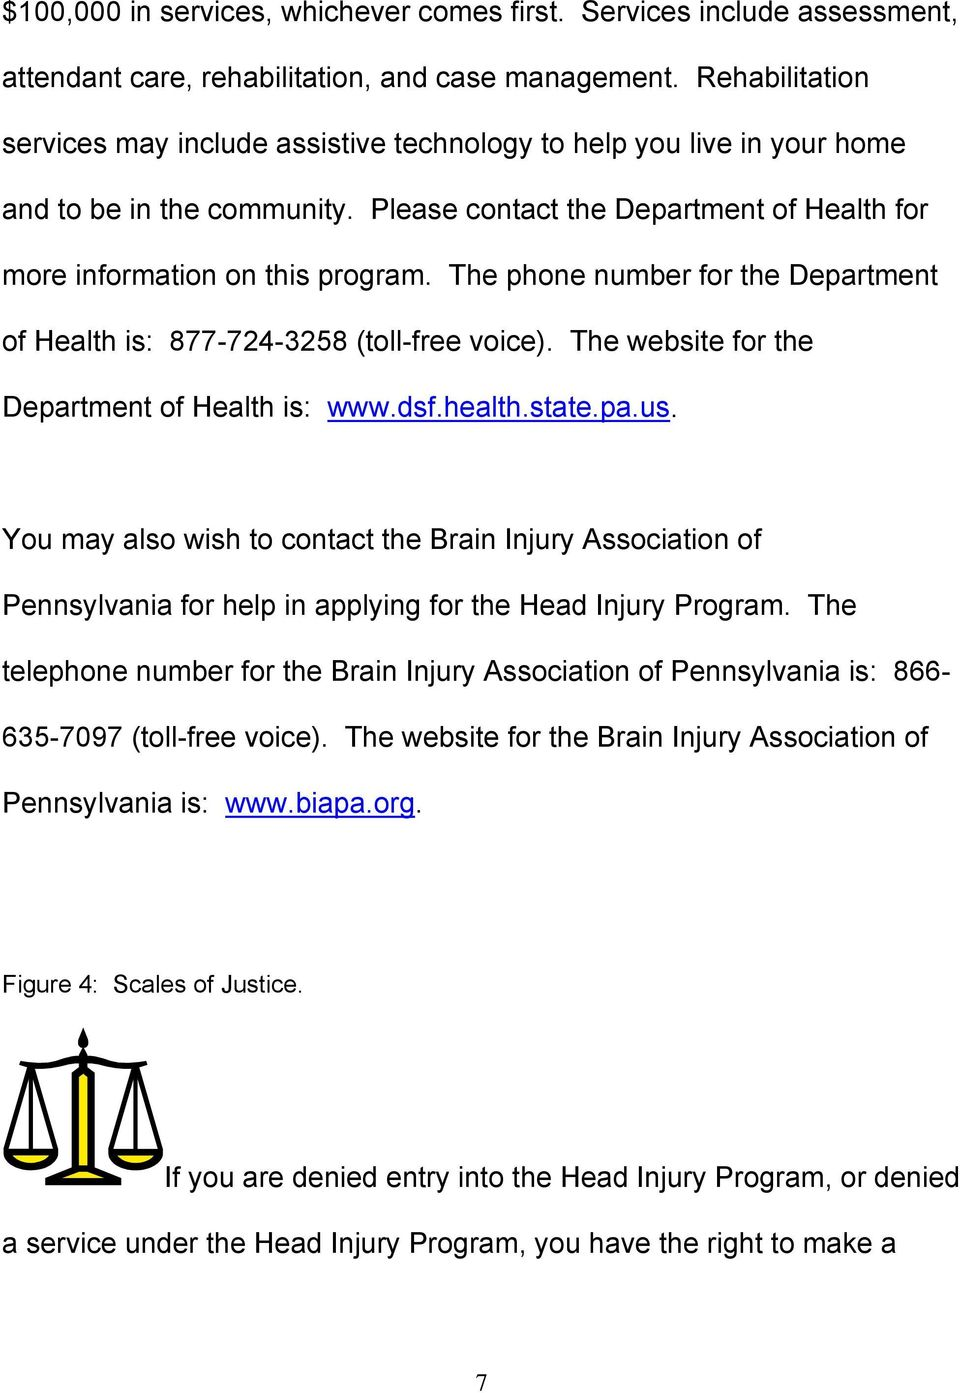 The phone number for the Department of Health is: 877-724-3258 (toll-free voice). The website for the Department of Health is: www.dsf.health.state.pa.us.